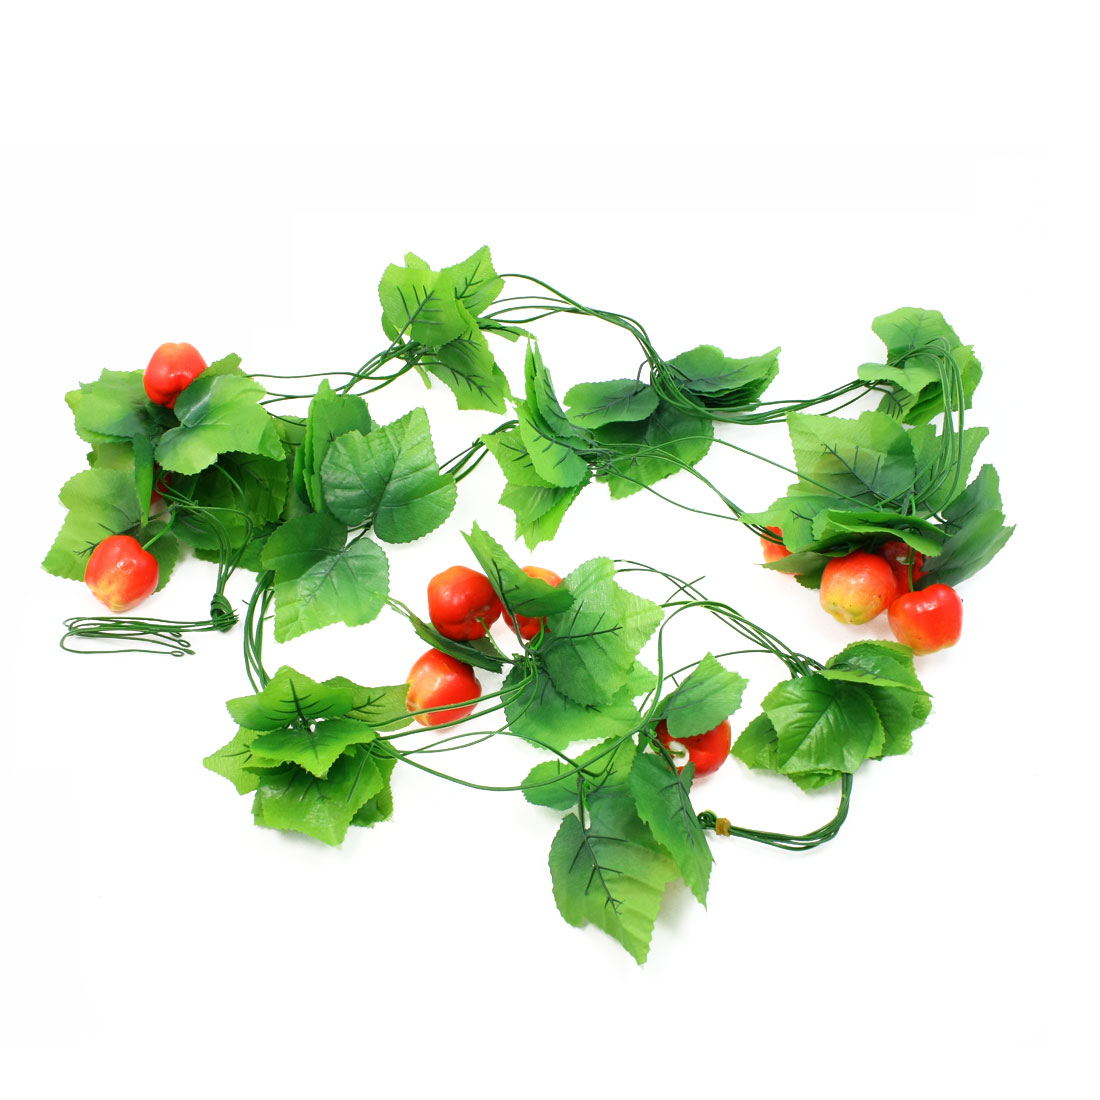 5 Pcs Green Heart Shape Leaf Emulation Tomato Fruit Hanging Vine 8.2Ft Length